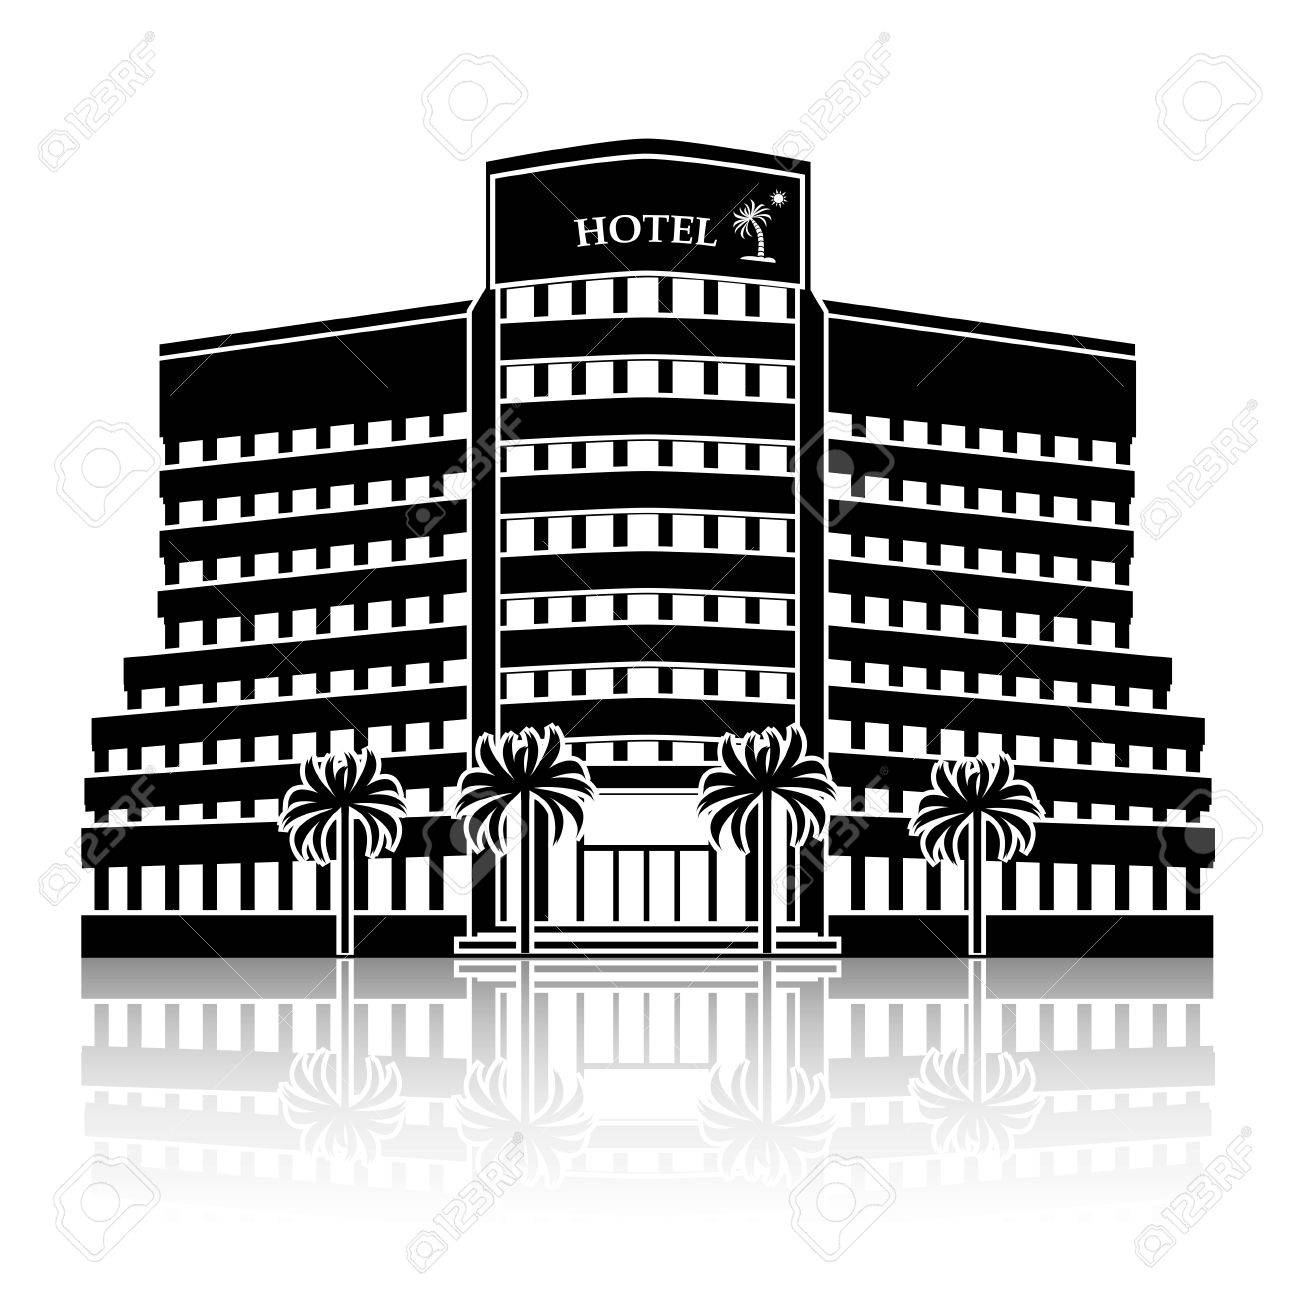 Silhouette Hotel Building With Palm Trees And Reflection On White Background Stock Vector